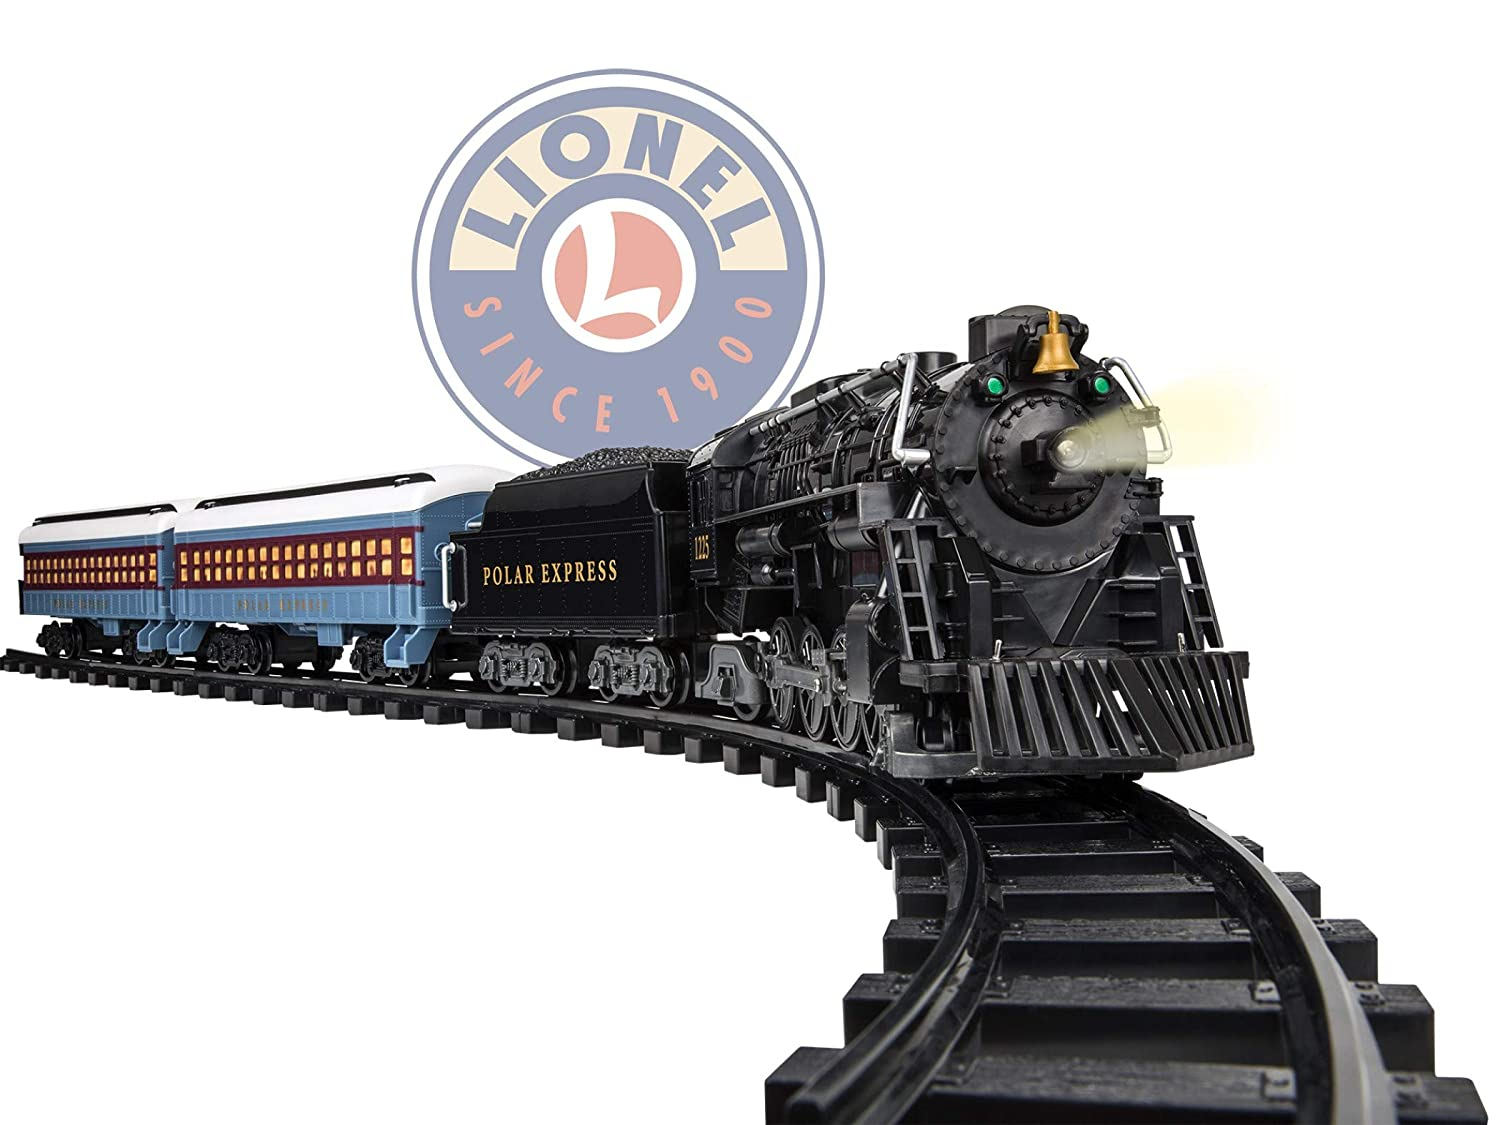 Polar Express Christmas Train Movie.Lionel The Polar Express Battery Powered Model Train Set Ready To Play W Remote